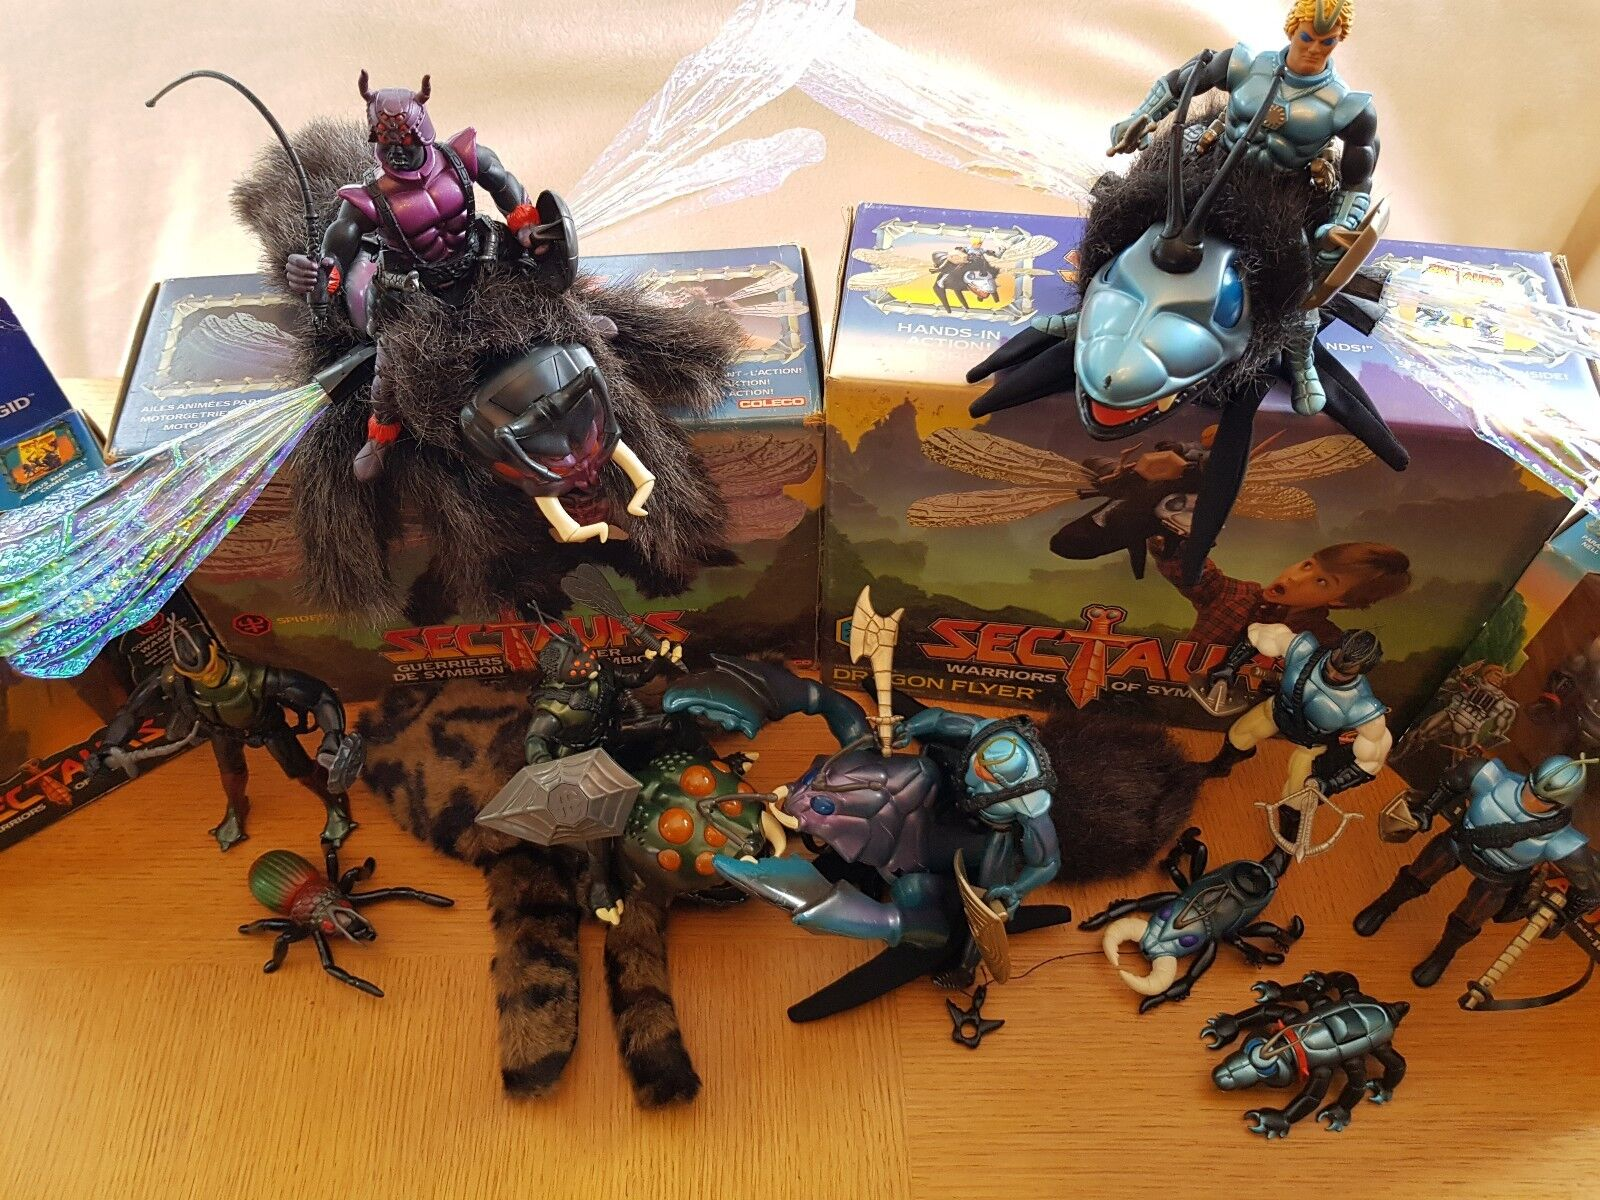 SECTAURS COMPLETE COLLECTION 1984 COLECO - RAINBOW TOYS EVERY FIGURE & BEAST